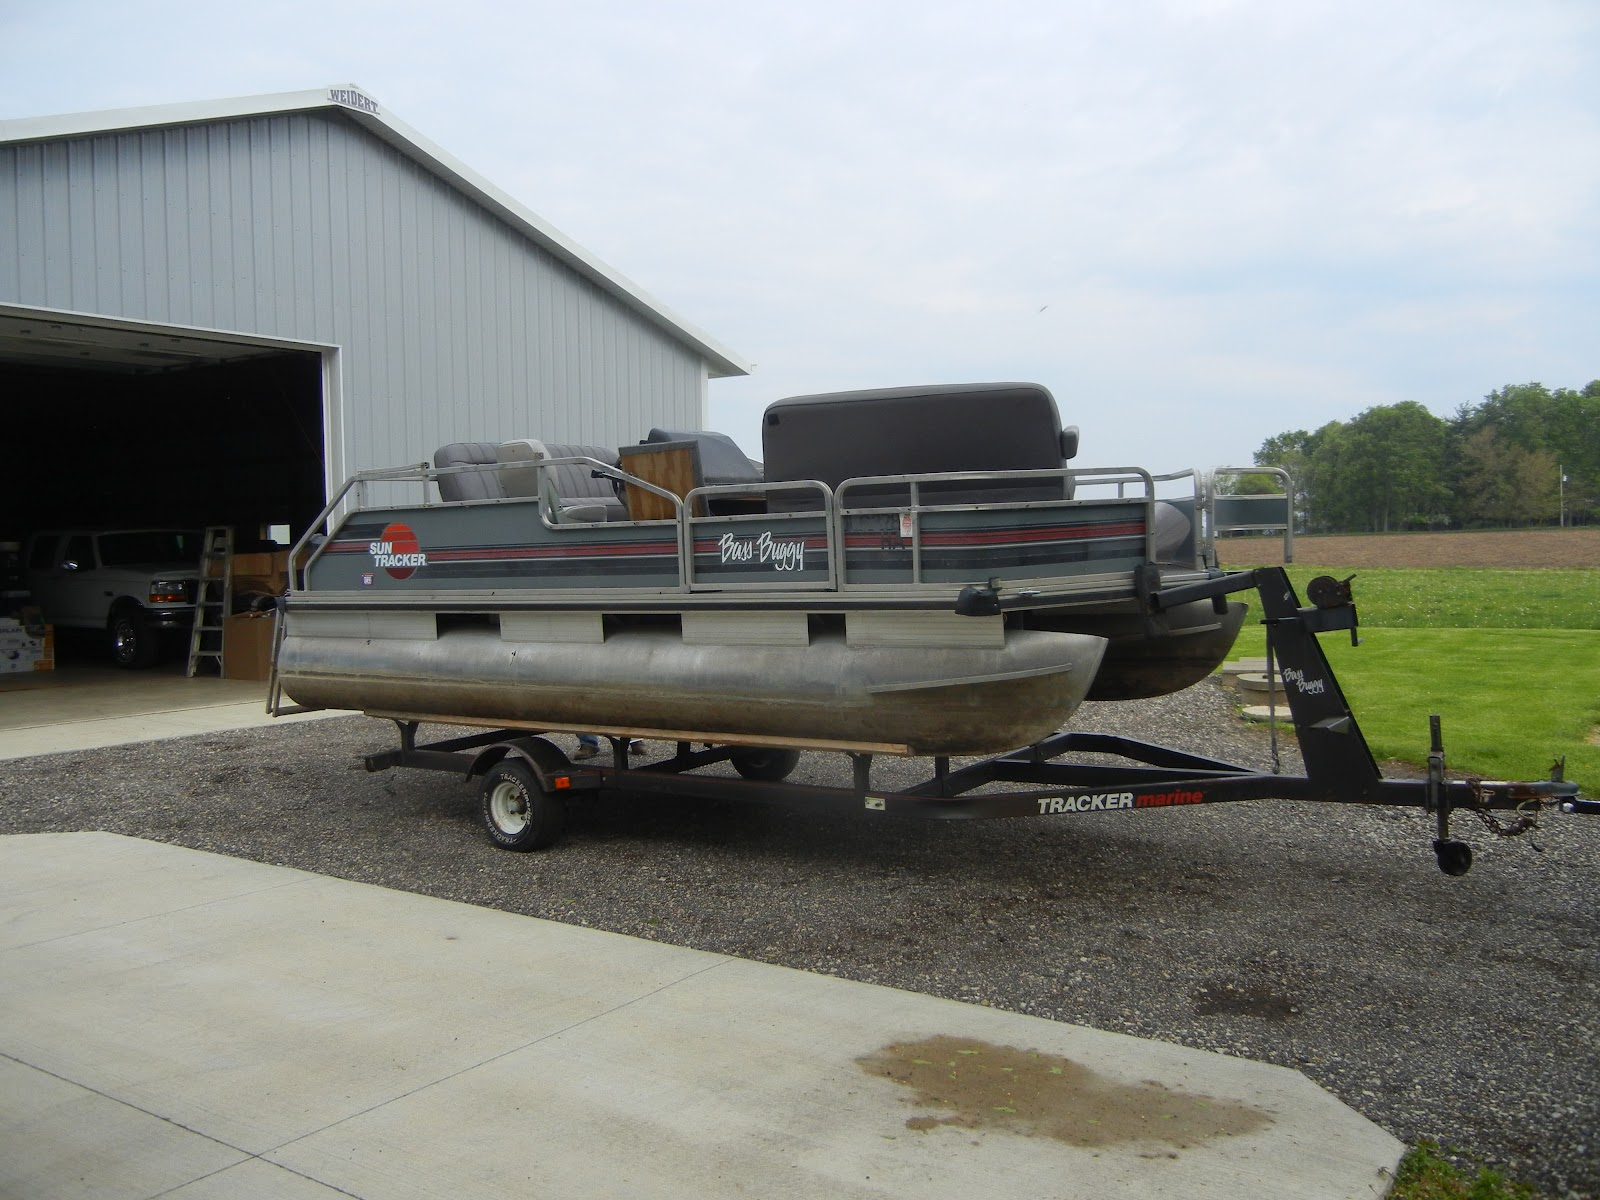 hight resolution of clint and i bought a used pontoon boat this week a bit of a fixer upper she floats and she runs but she needs a little elbow grease and rewiring at the